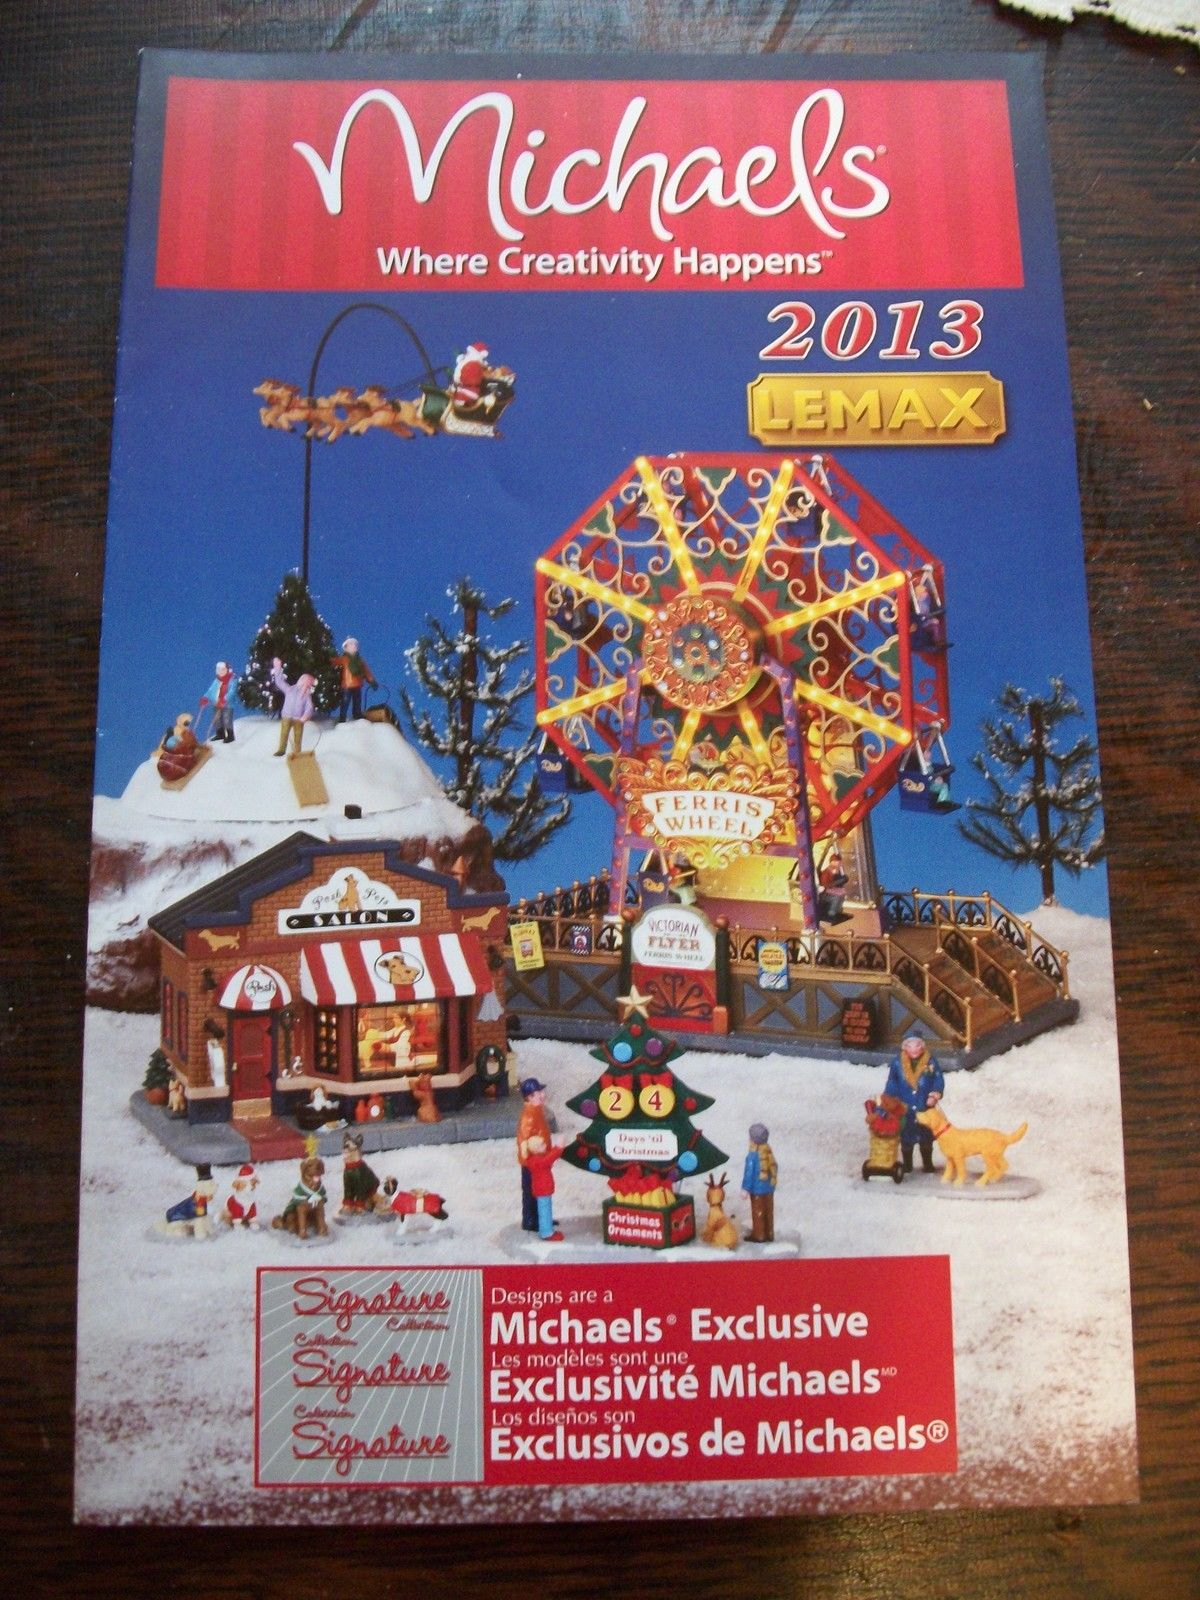 lemax michaels christmas village 2013 product brochure catalog ebay michael christmas product brochure - Christmas Village Sets Michaels